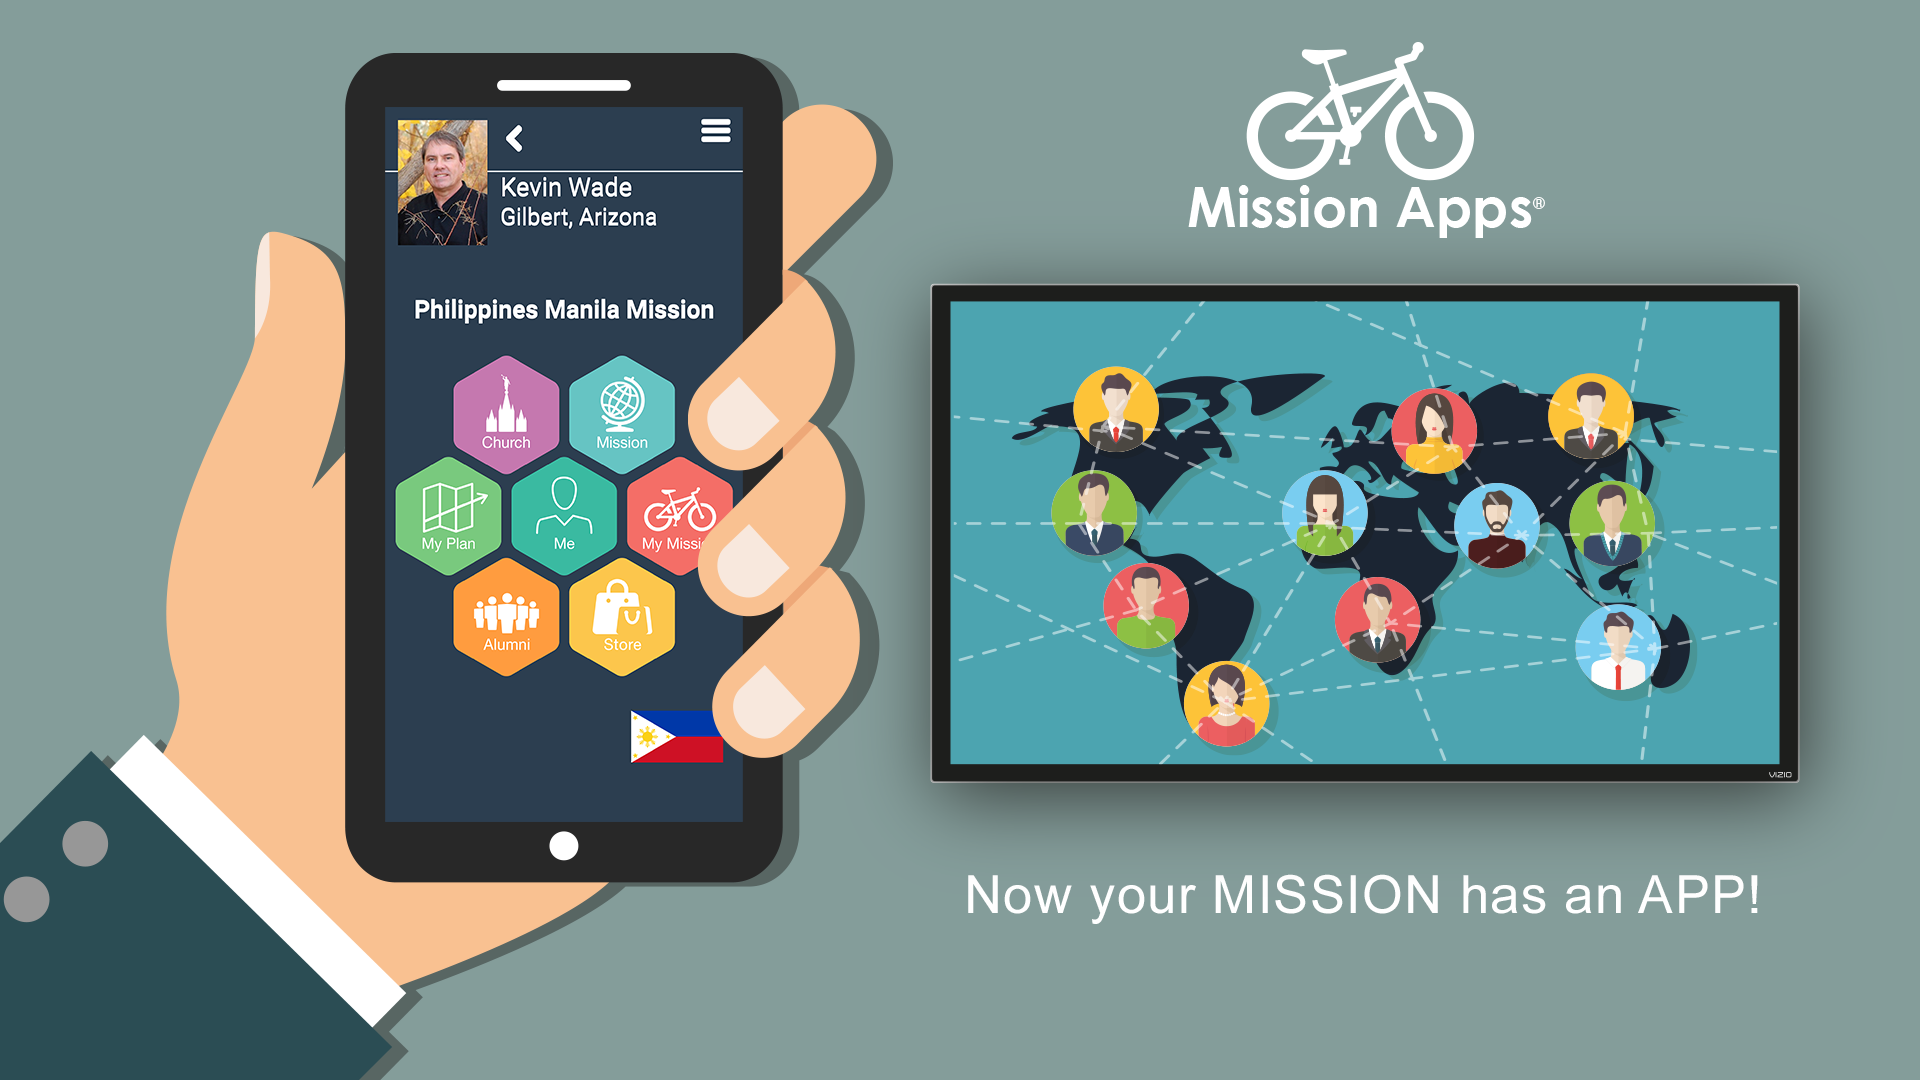 Mission Apps